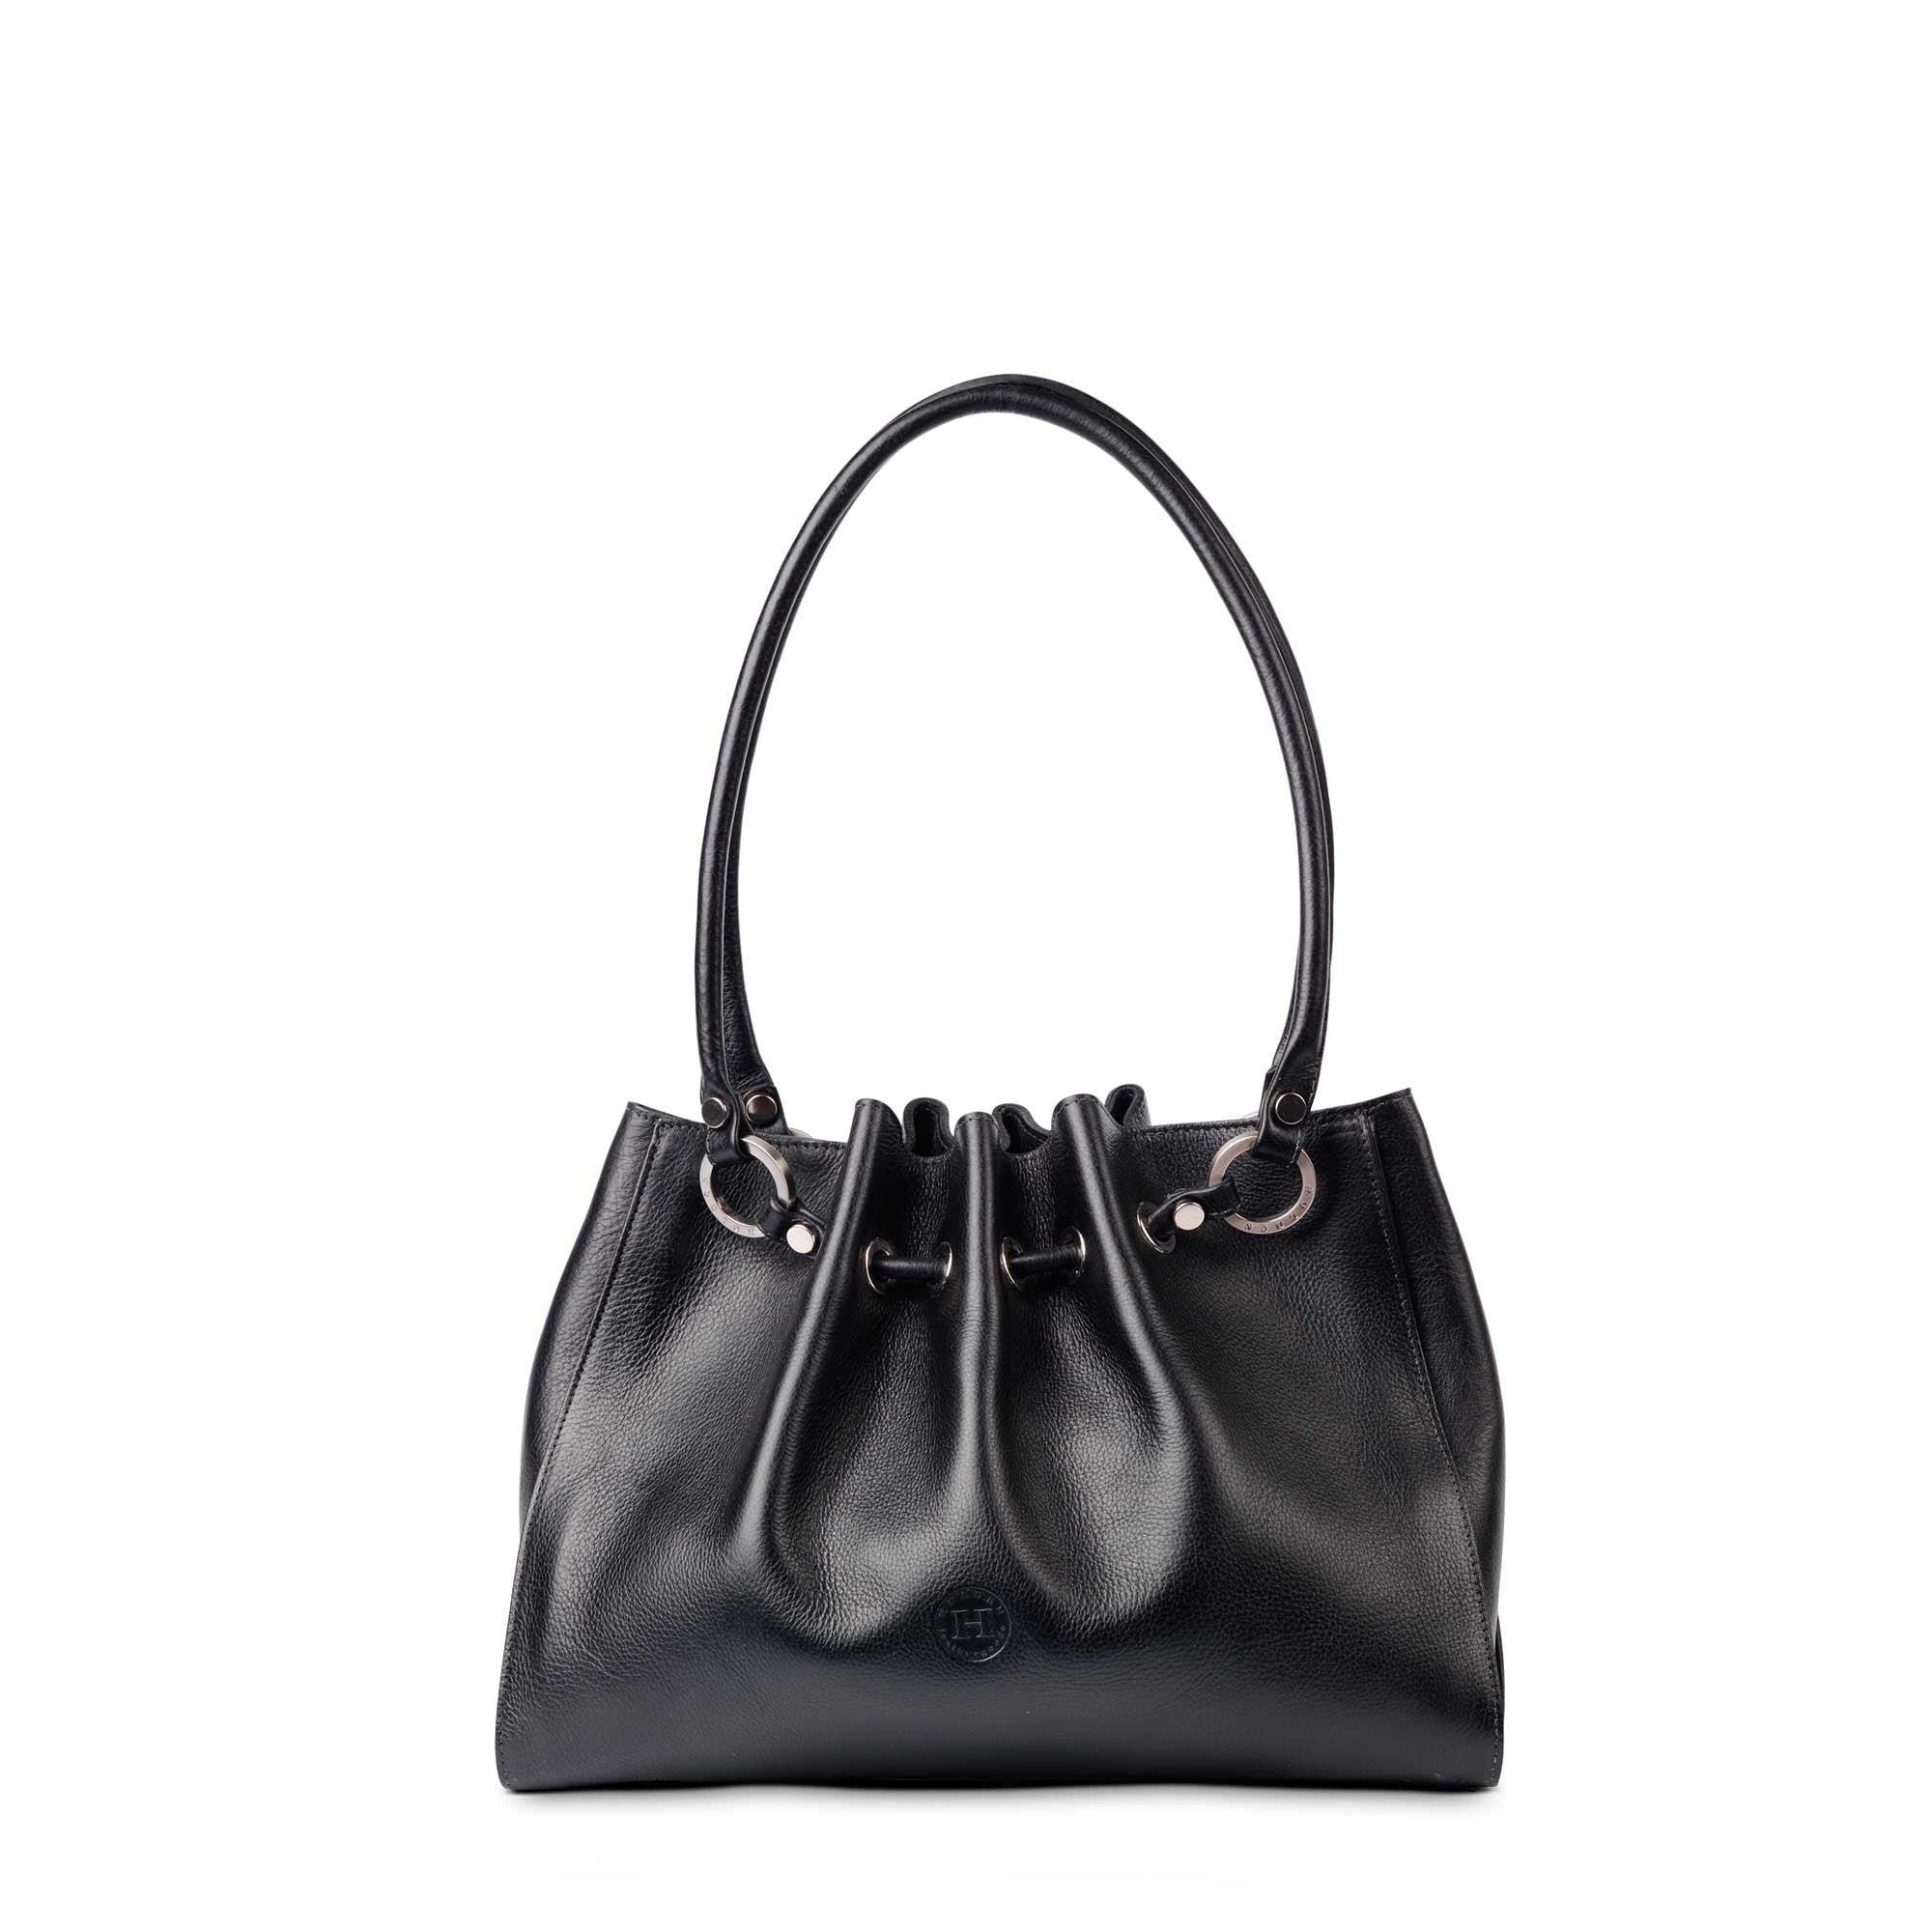 Siobhan Medium Leather Tote Black - Holden Leathergoods, leather bags handmade in Ireland